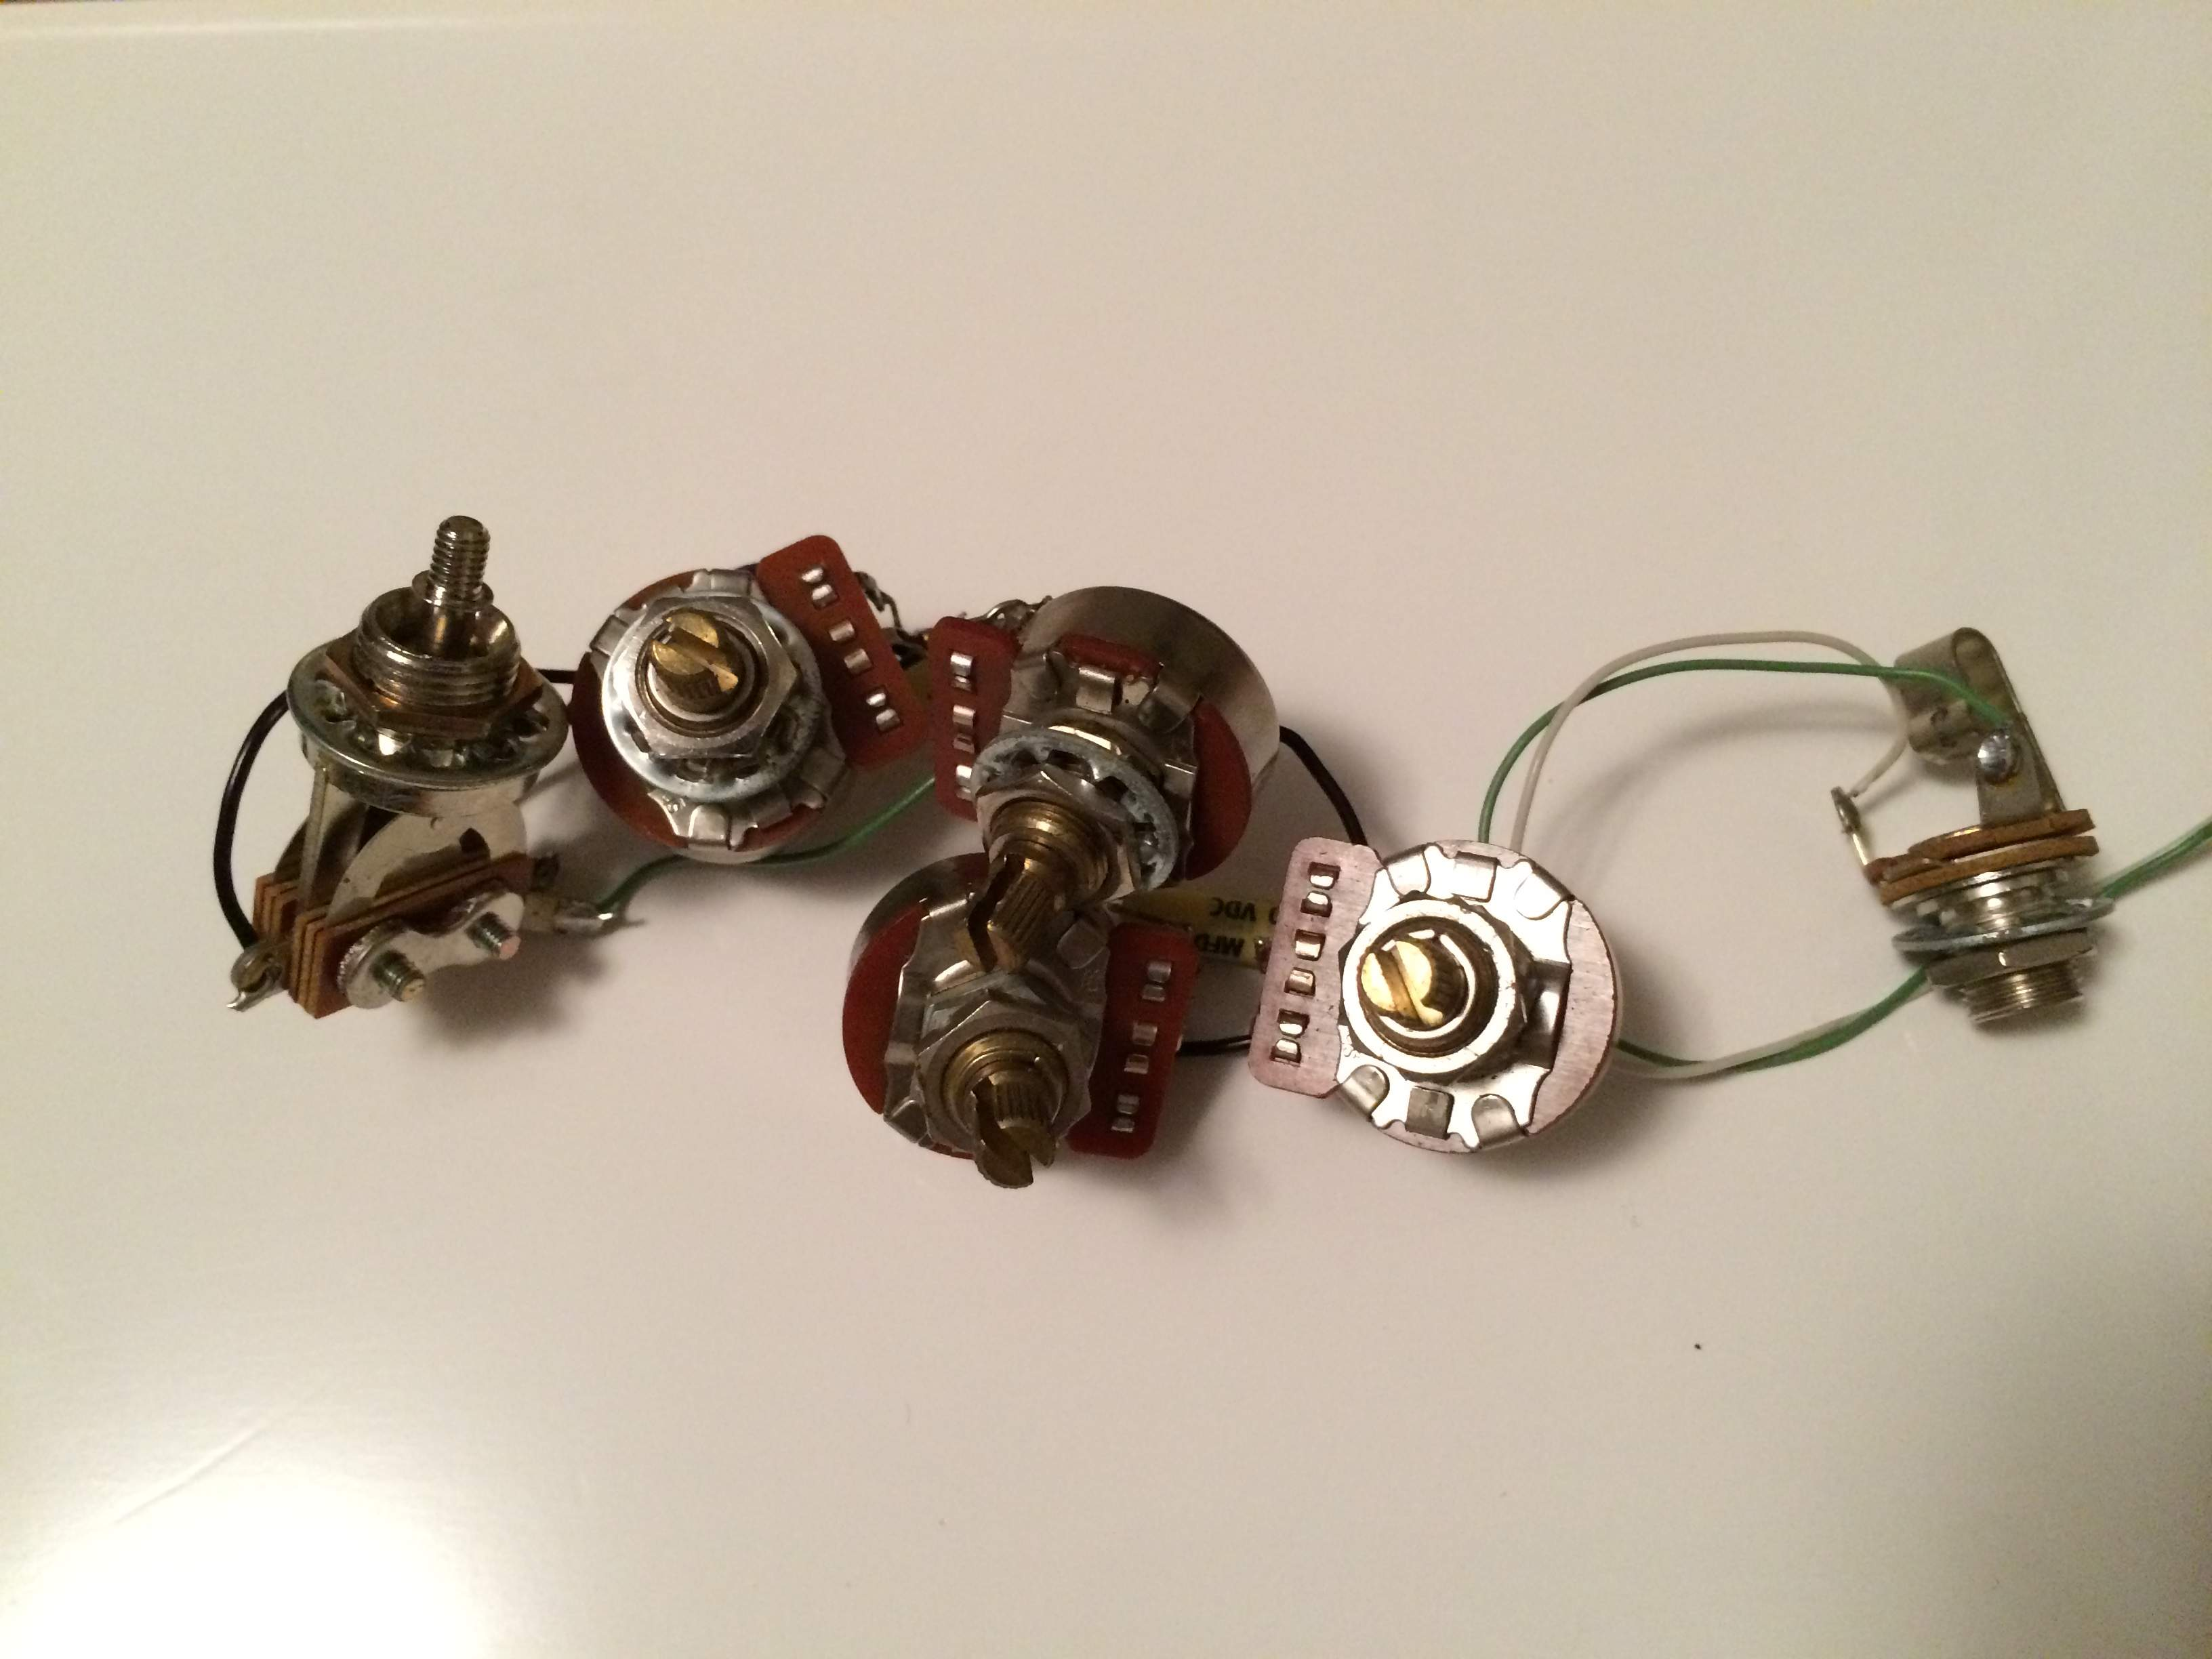 rickenbacker 4001 bass wiring harness 1979 used rickenbacker 4001 bass wiring harness 1979 used talkbass com